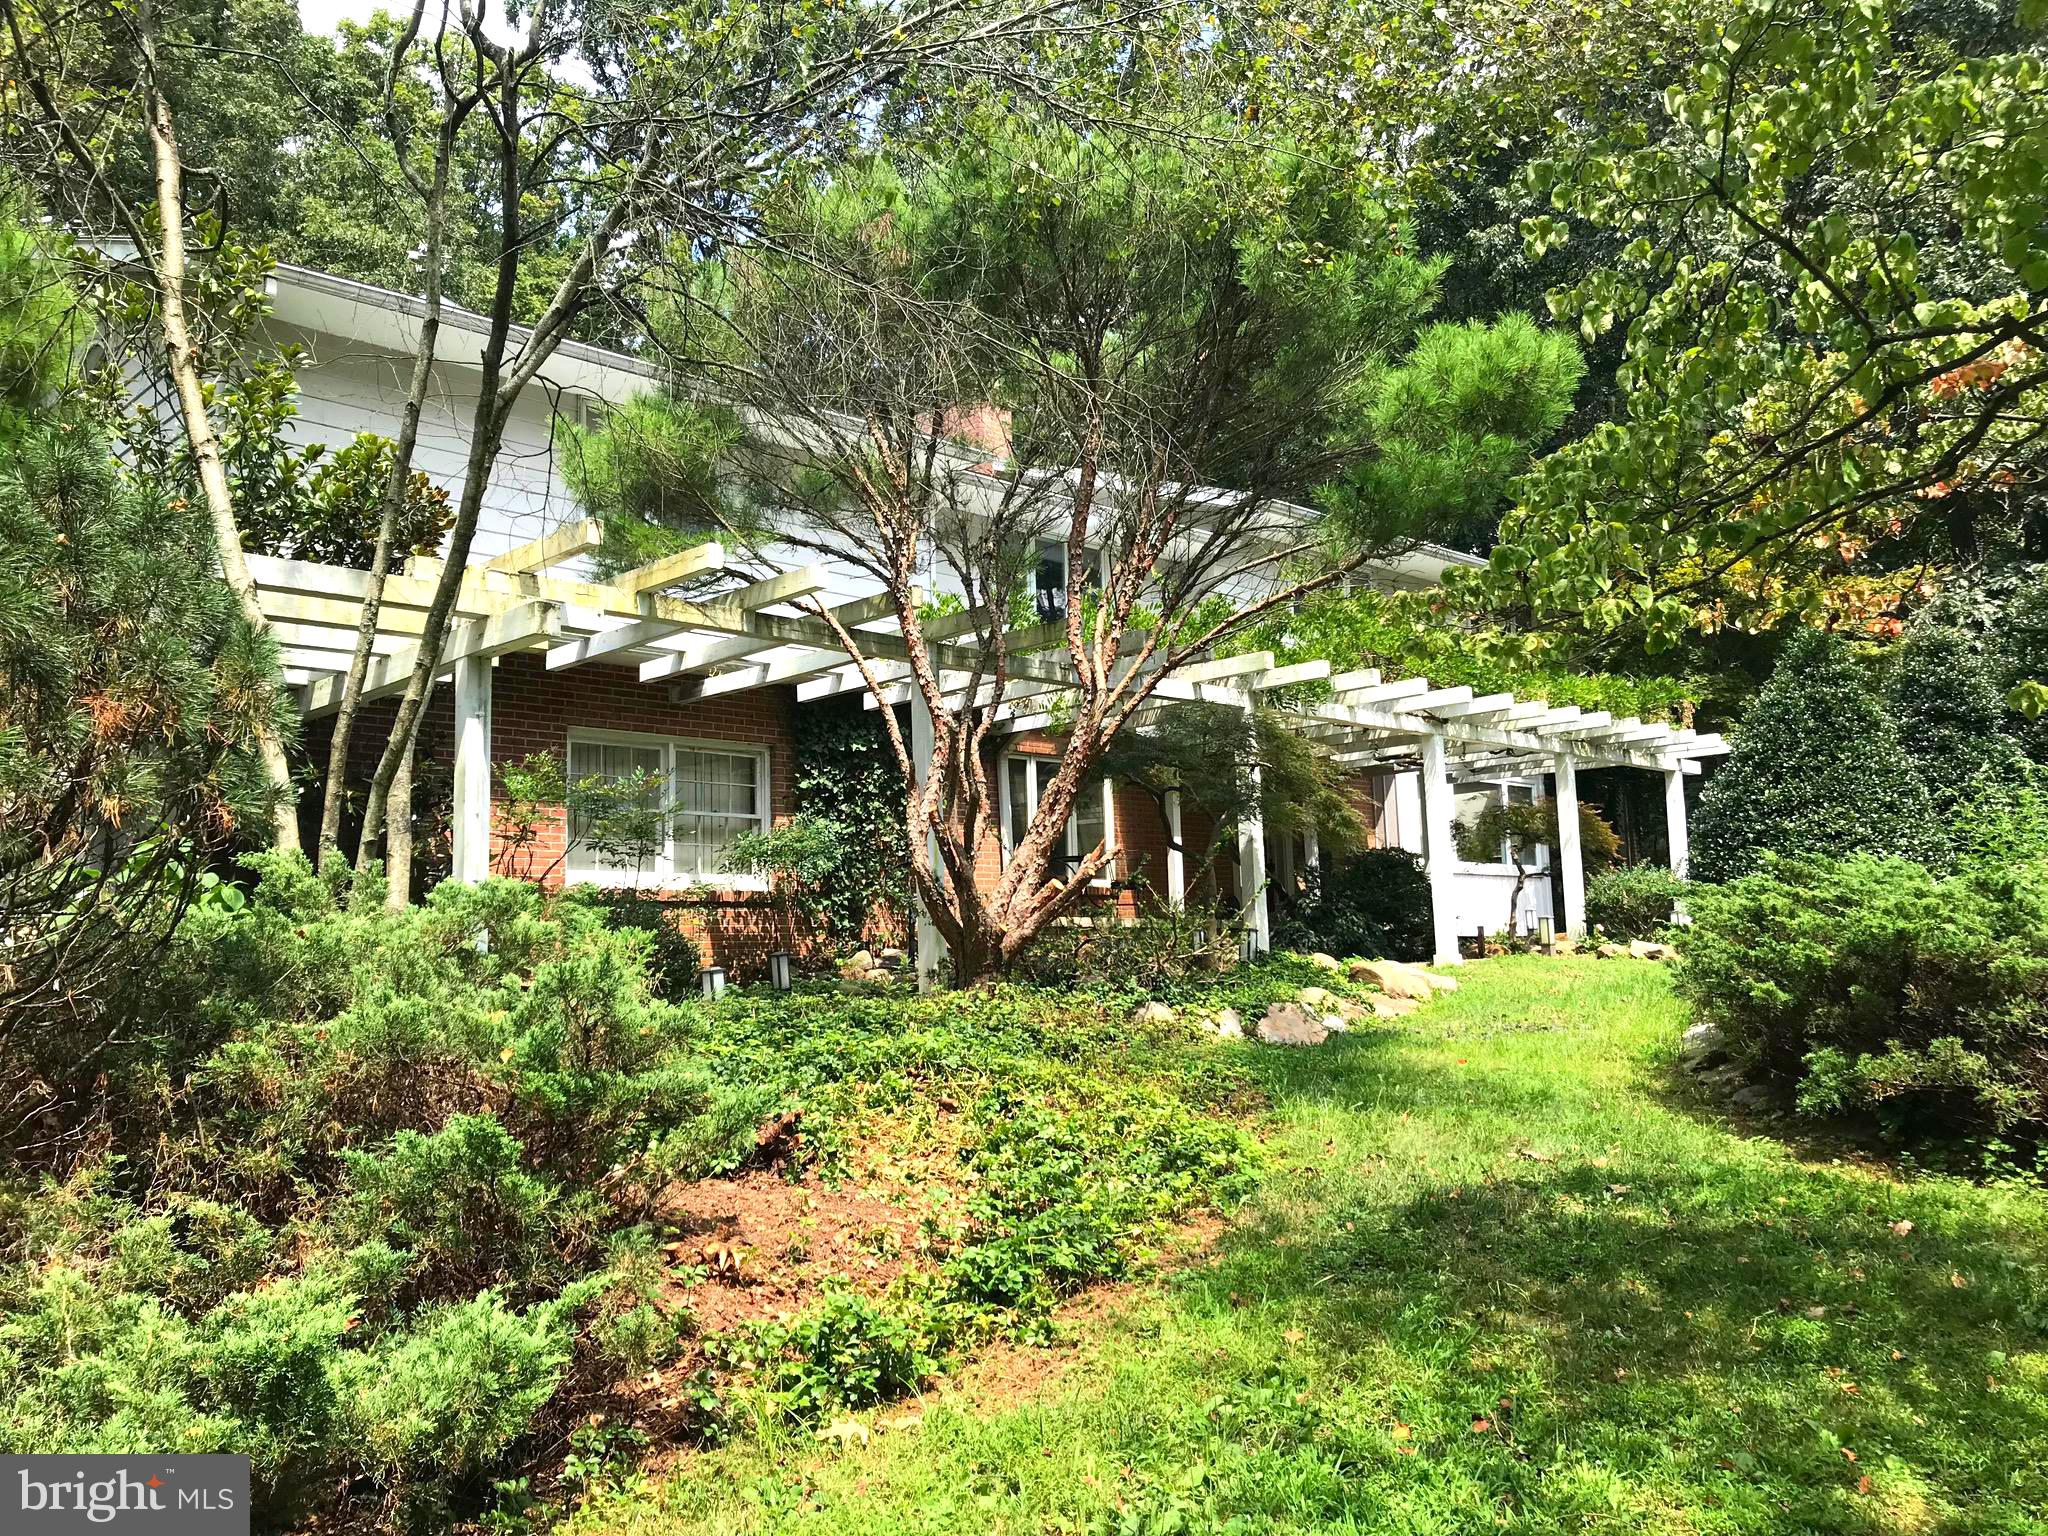 4640 OLEY TURNPIKE ROAD, READING, PA 19606